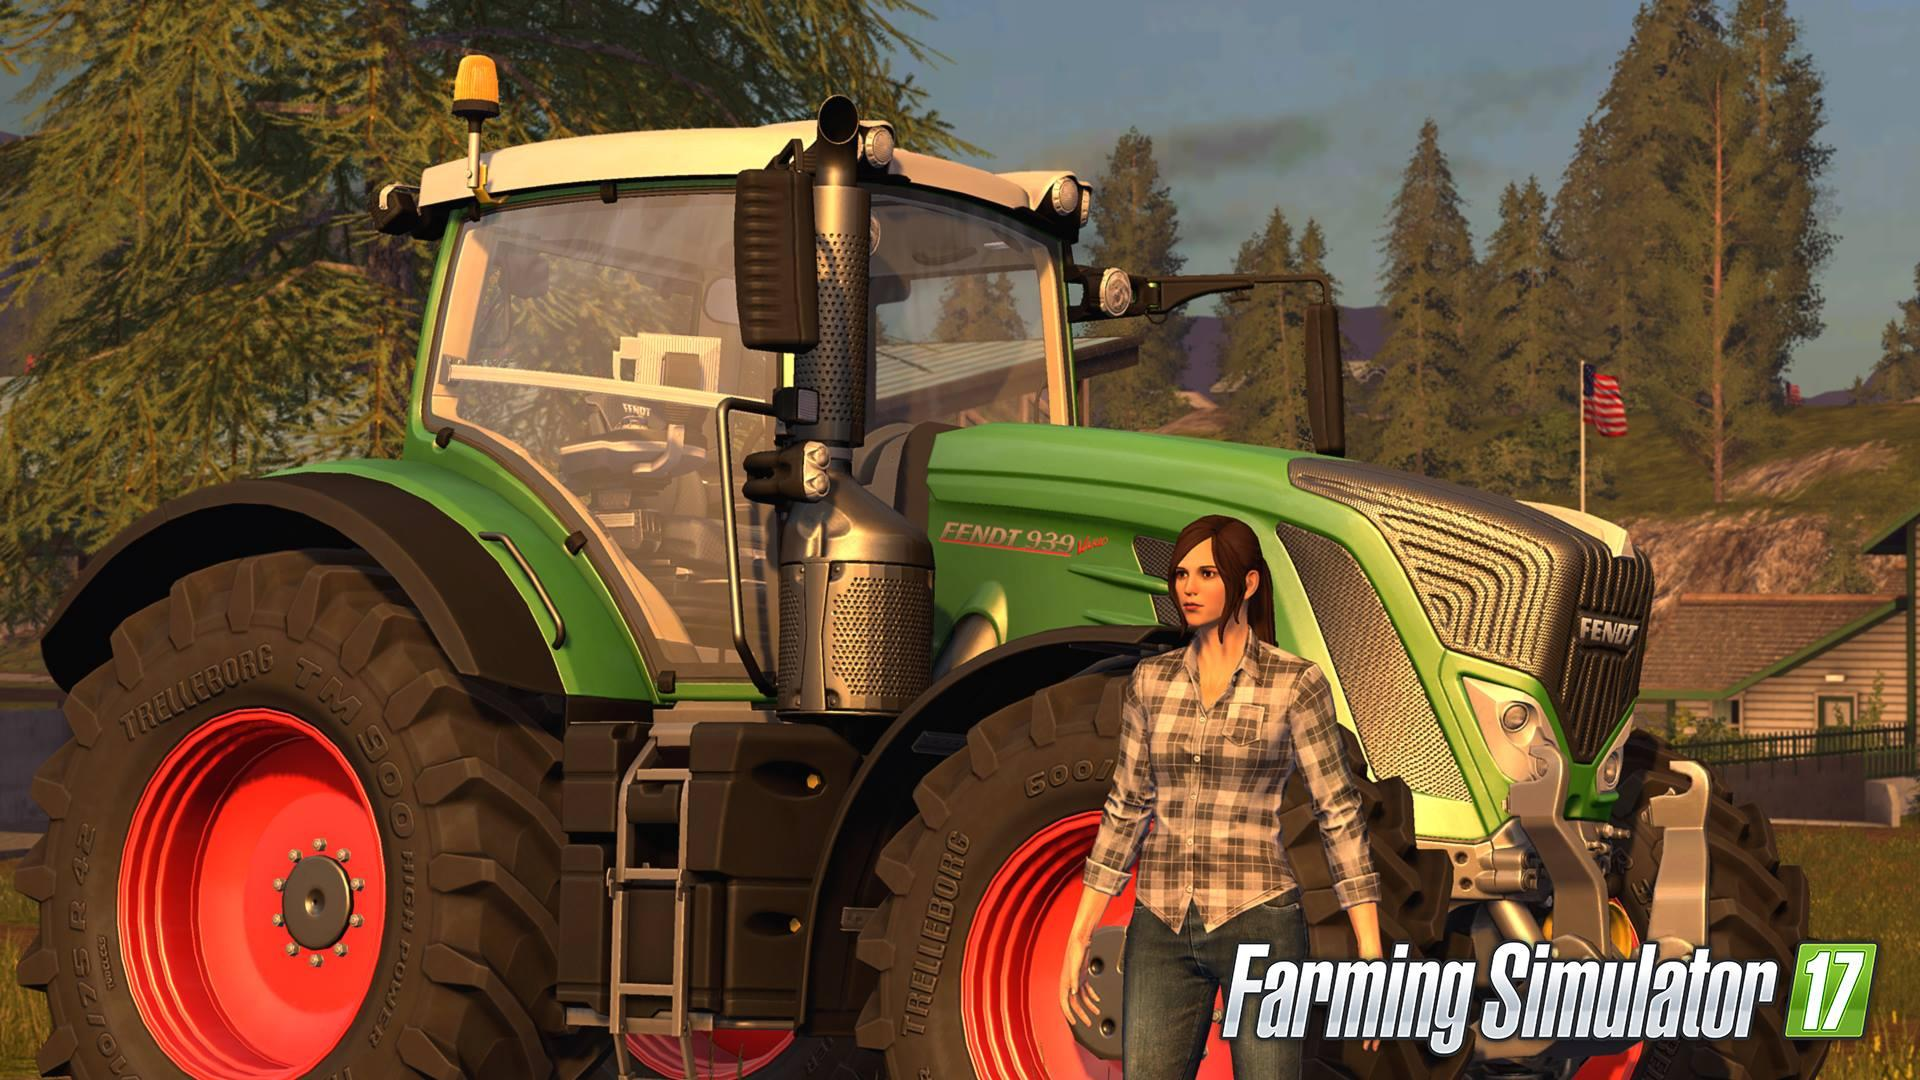 FS17 offers the option to play as a female farmer